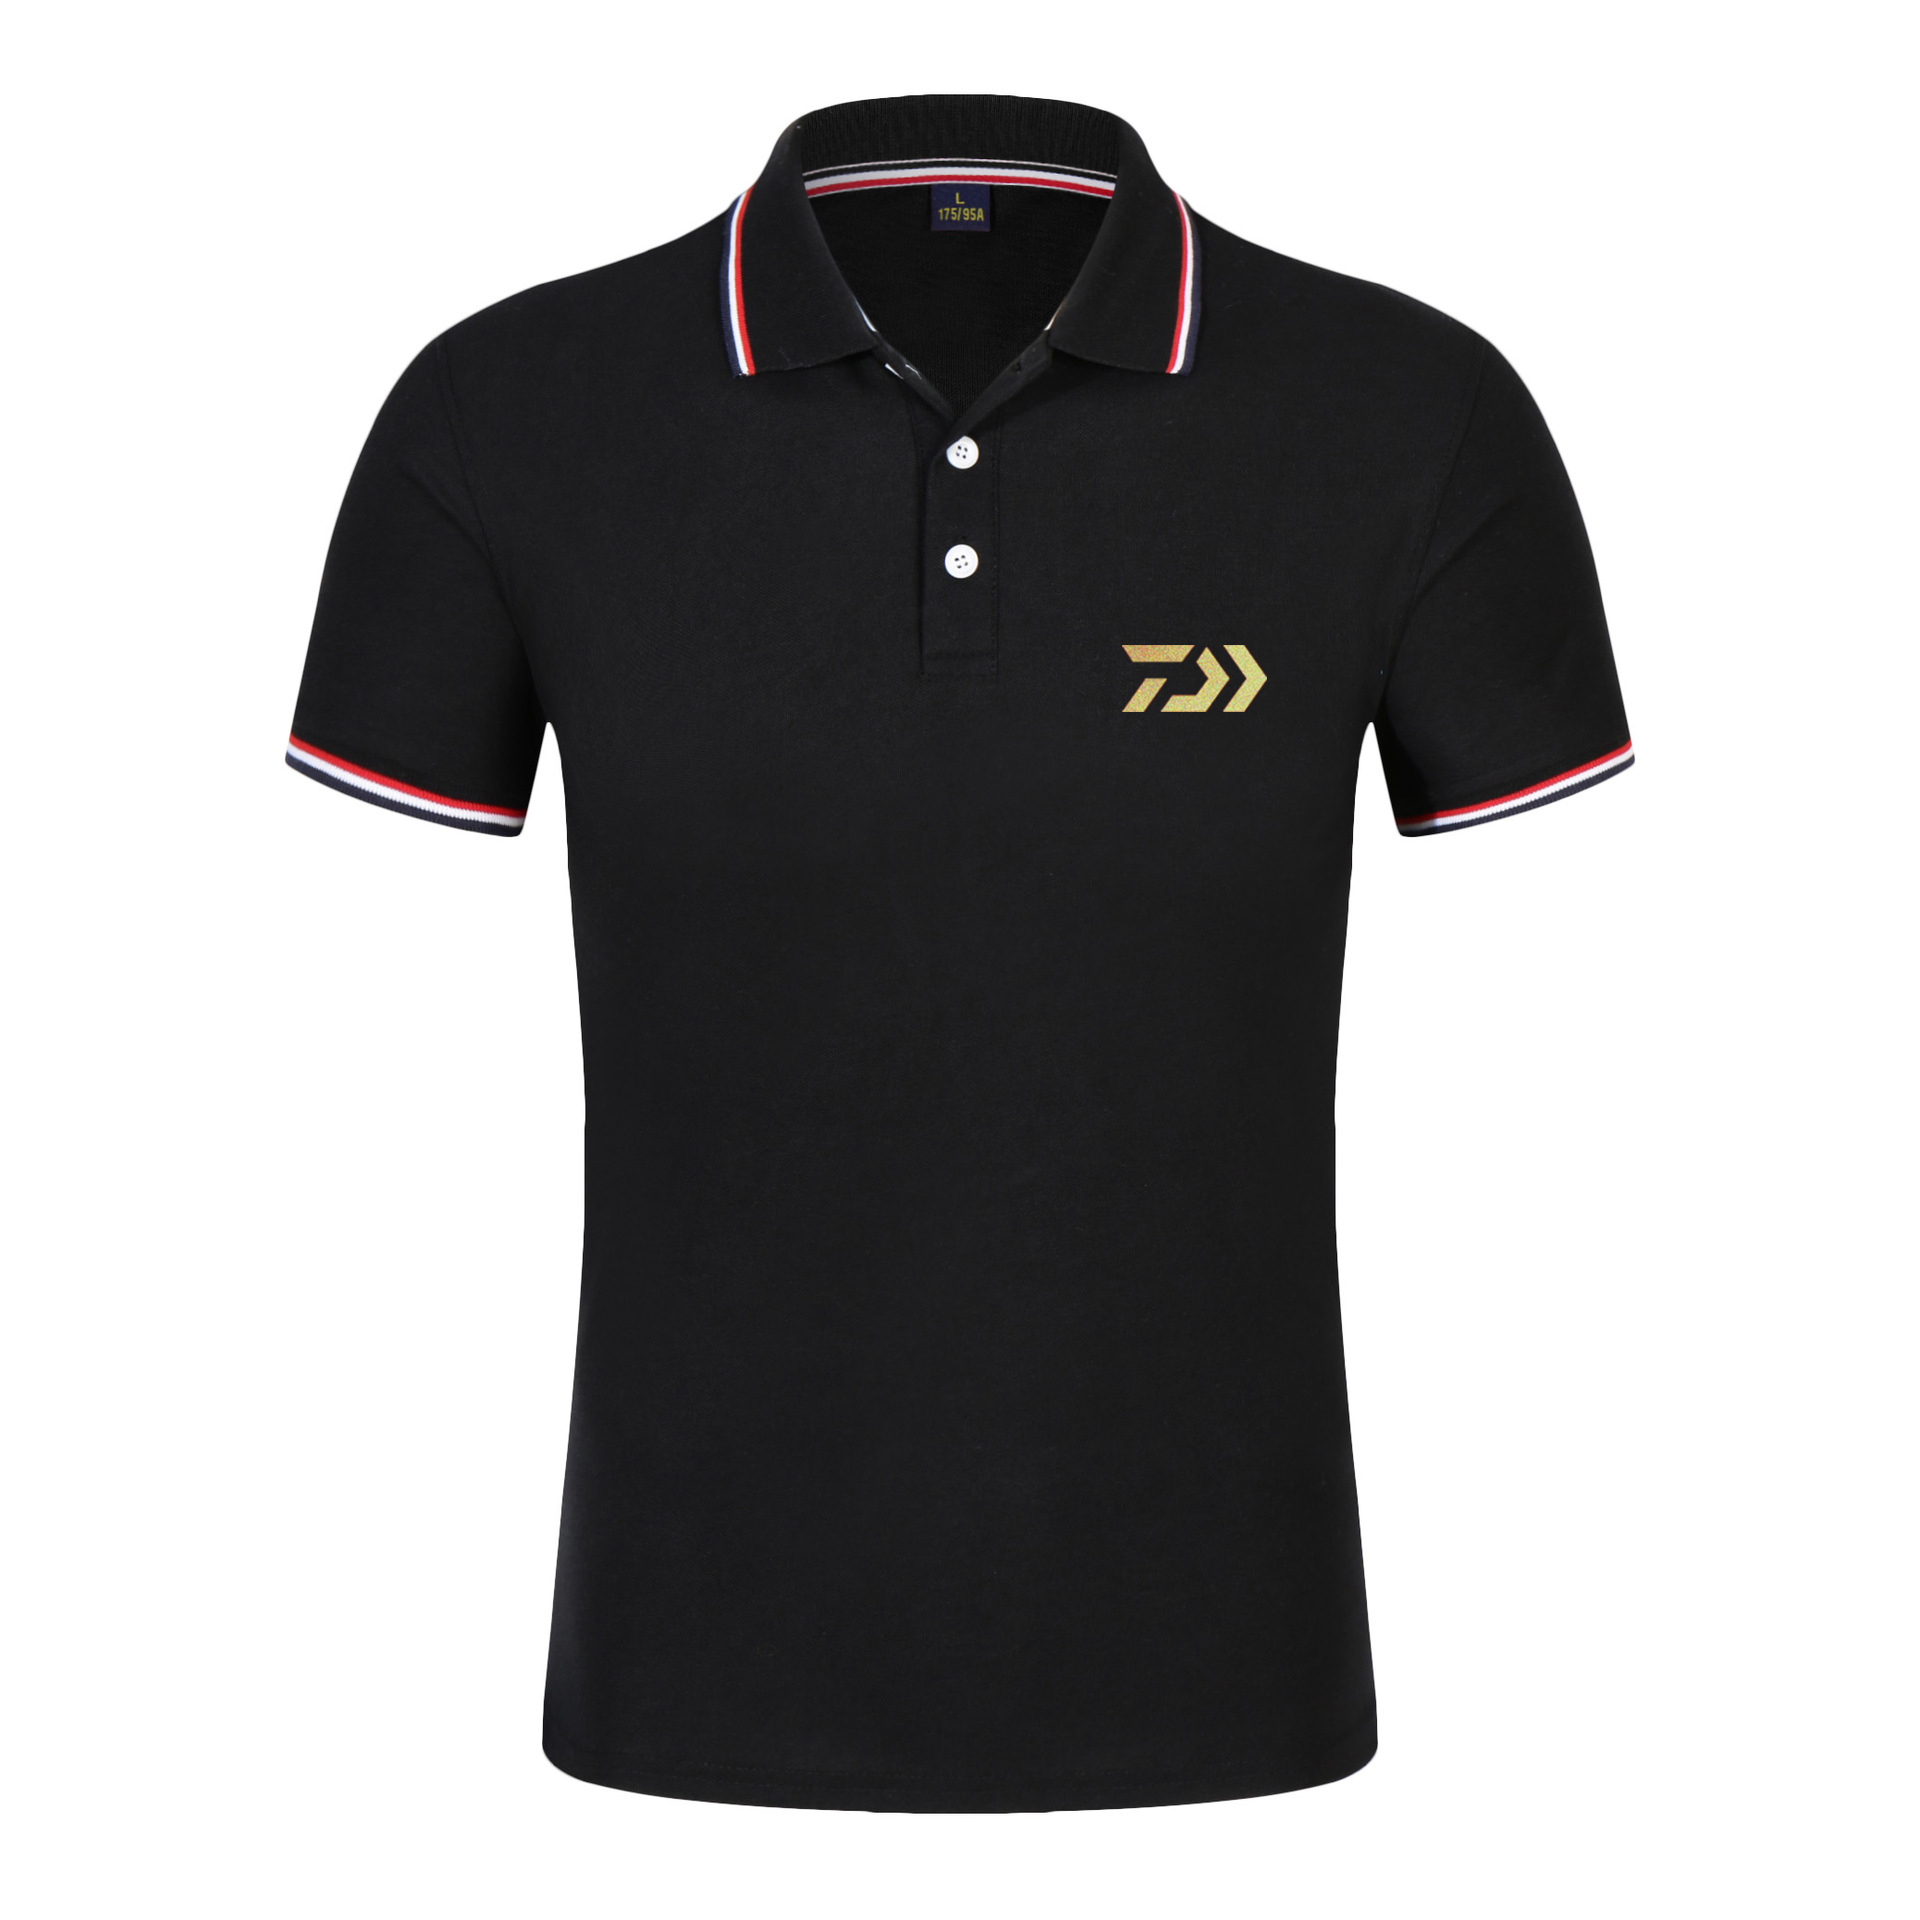 2019 Brand Daiwa Fishing Polo Tee Breathable Quick Drying Comfortable Outdoor Hiking Cycling Sports Professional Fishing T-shirt2019 Brand Daiwa Fishing Polo Tee Breathable Quick Drying Comfortable Outdoor Hiking Cycling Sports Professional Fishing T-shirt